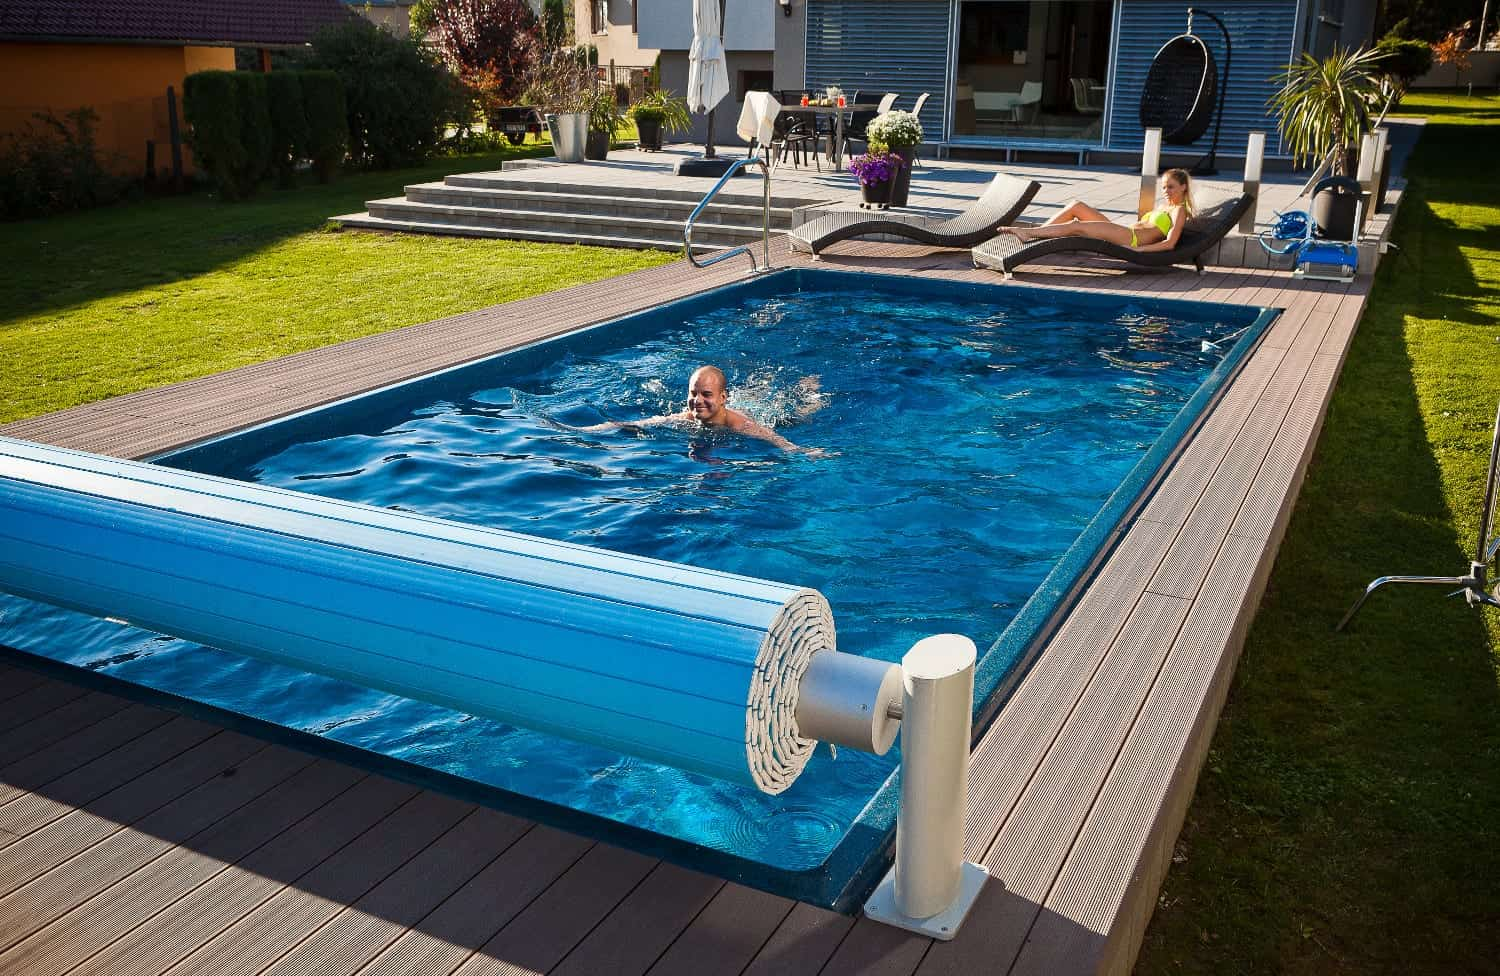 Diamant Ceramic One Peice Pool: 7.20 X 3.42 X1.40 M